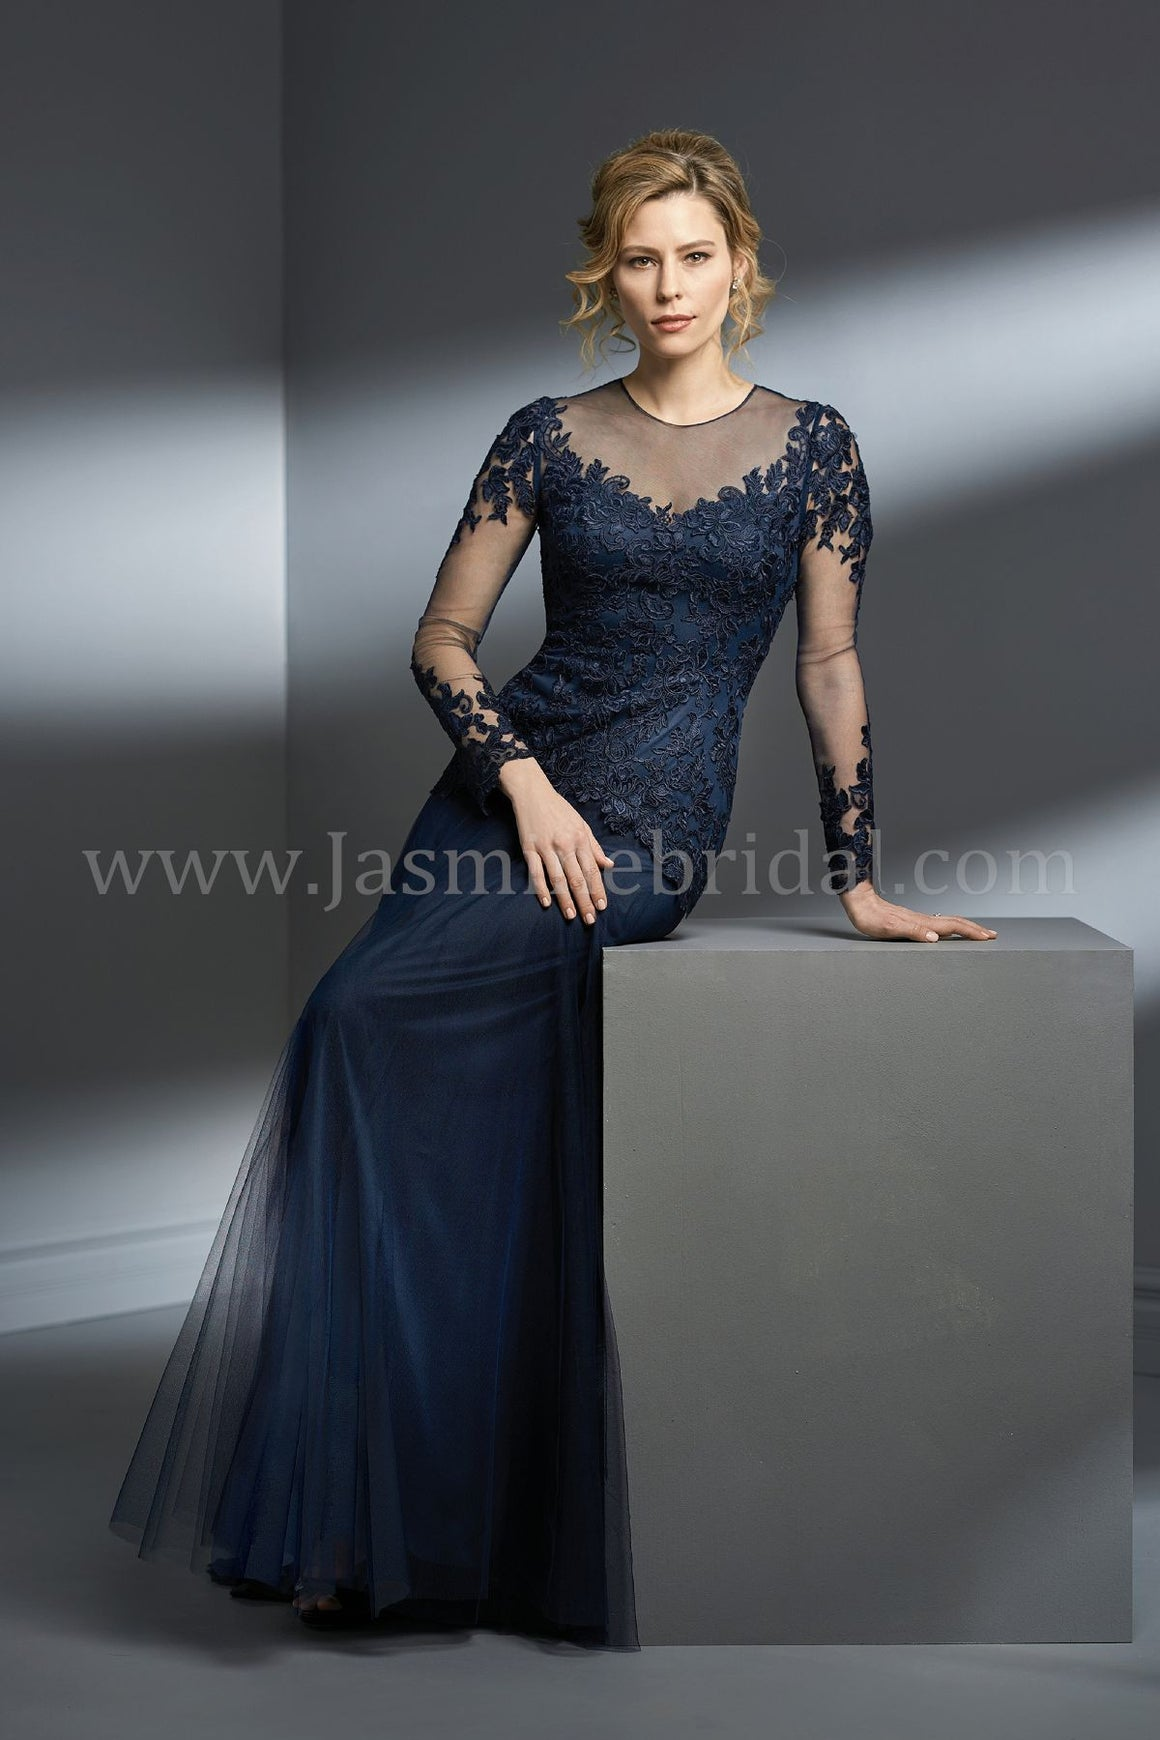 Jade Couture Netting Lace with Stretch Lining (Available in 18 colors) K198054